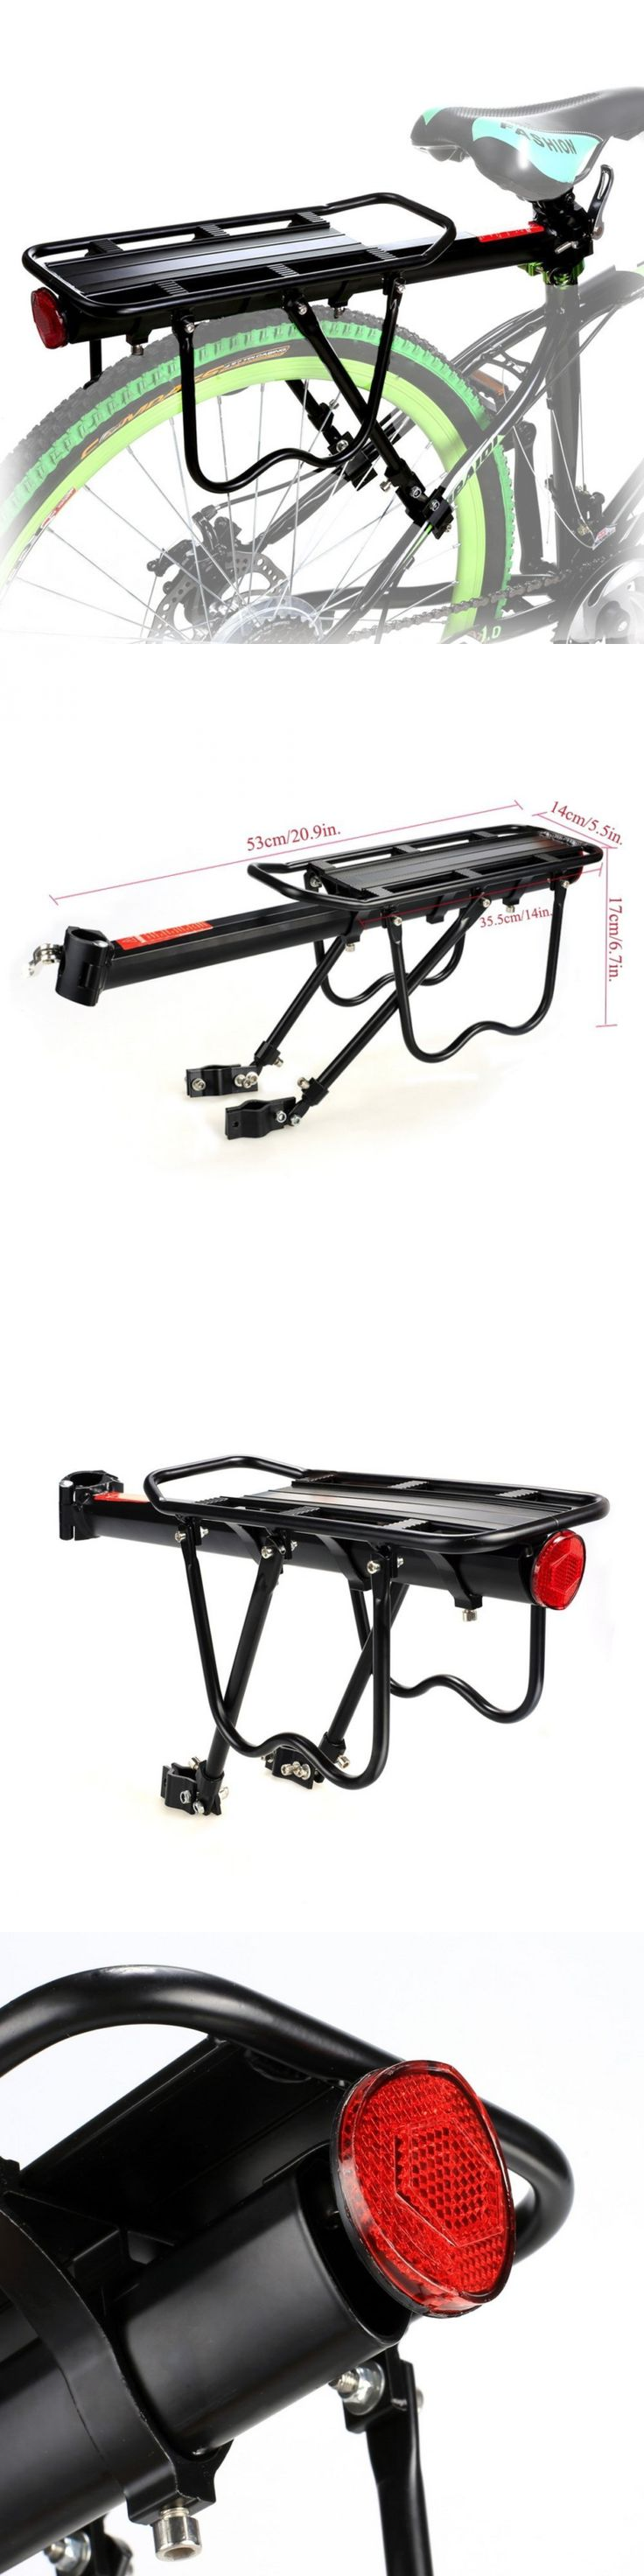 Carrier and Pannier Racks 177836: 110 Lbs Capacity Bicycle Rear Rack Adjustable Pannier Bike Luggage Cargo Rack -> BUY IT NOW ONLY: $31.8 on eBay!